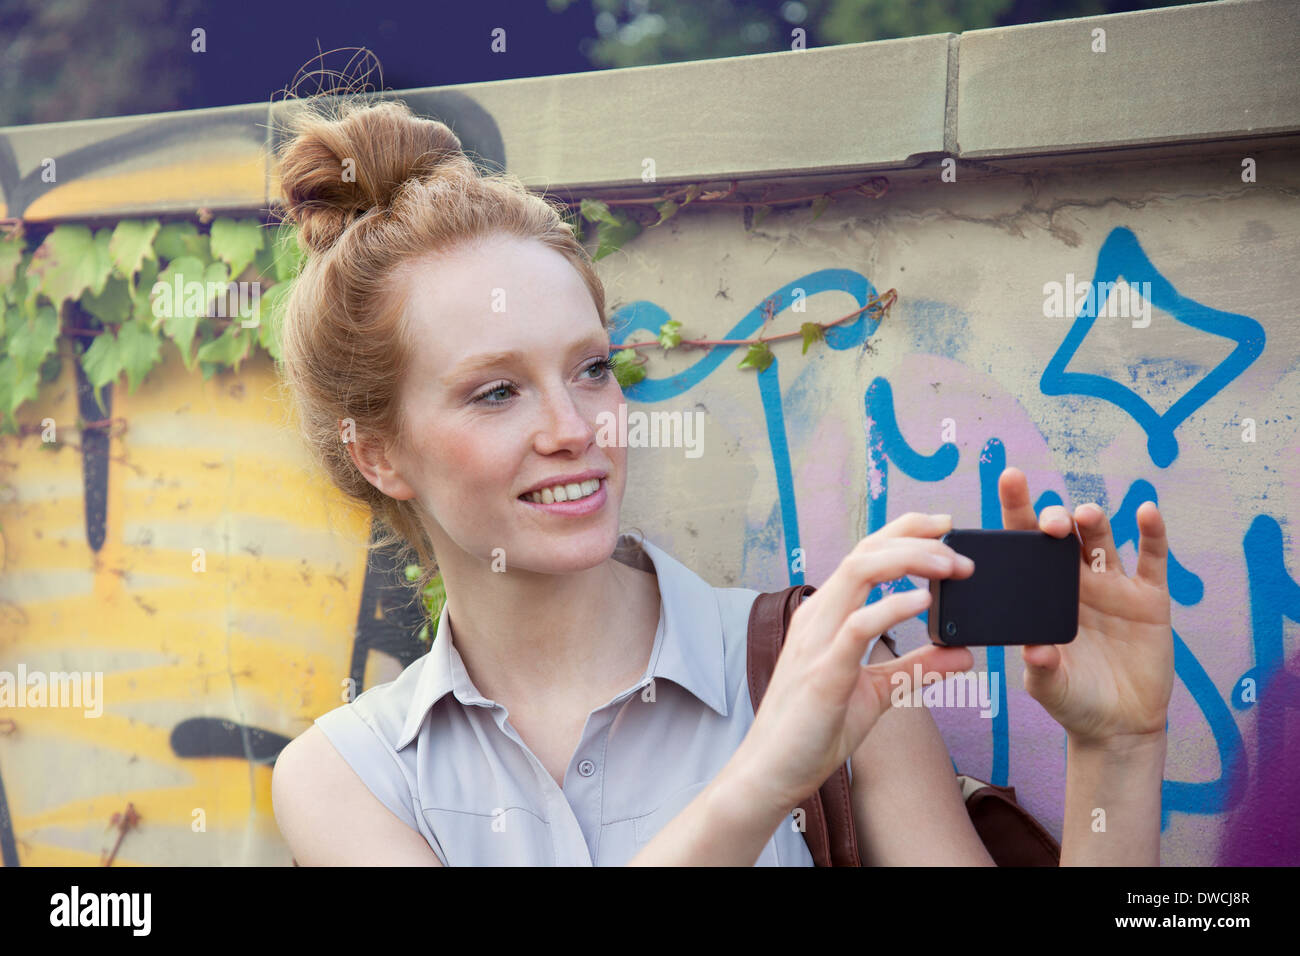 Young woman taking photograph on smartphone - Stock Image